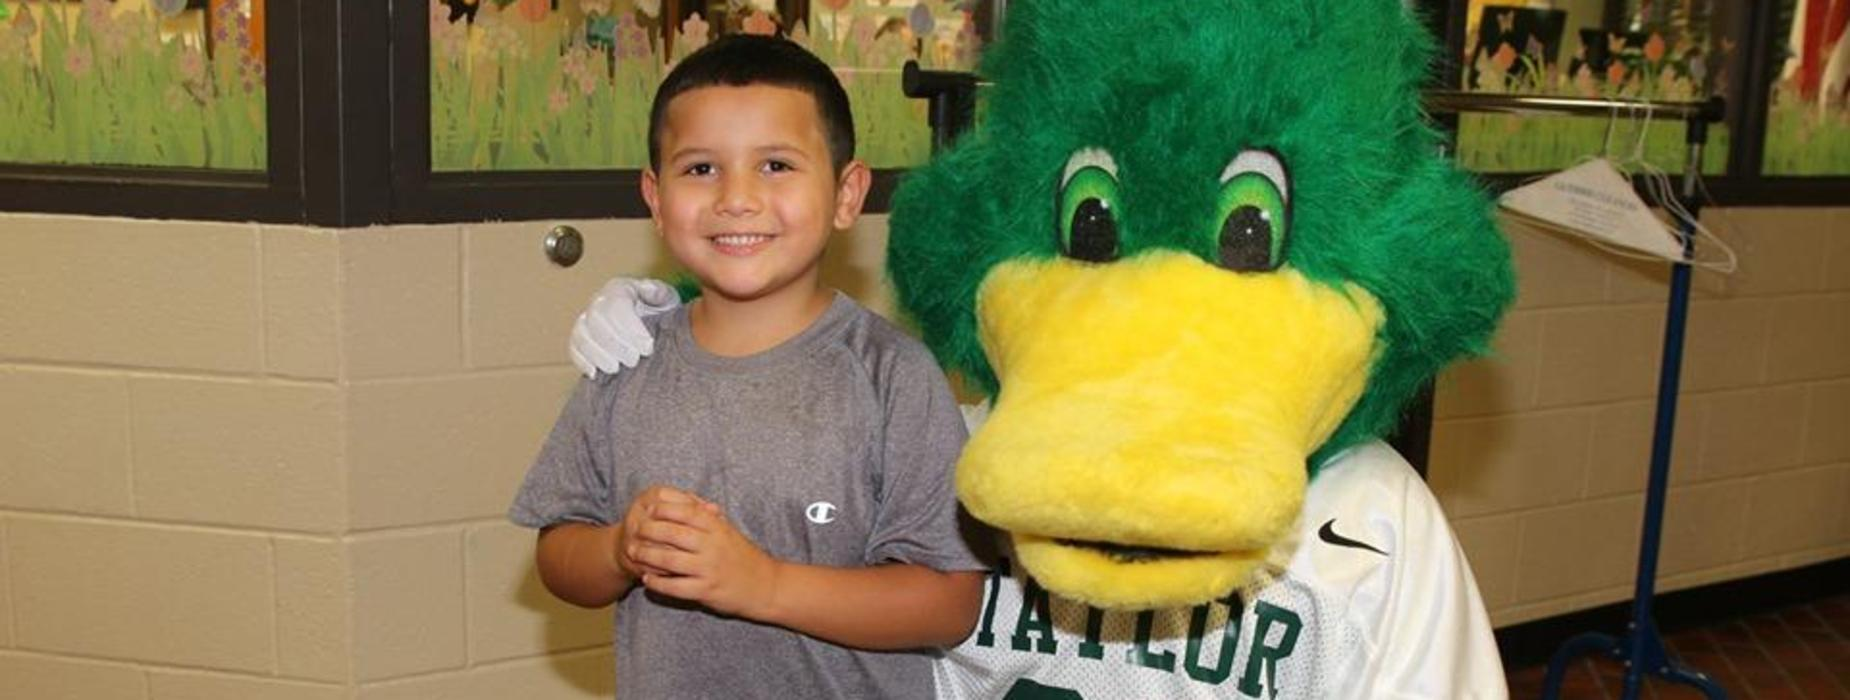 student with duck mascot